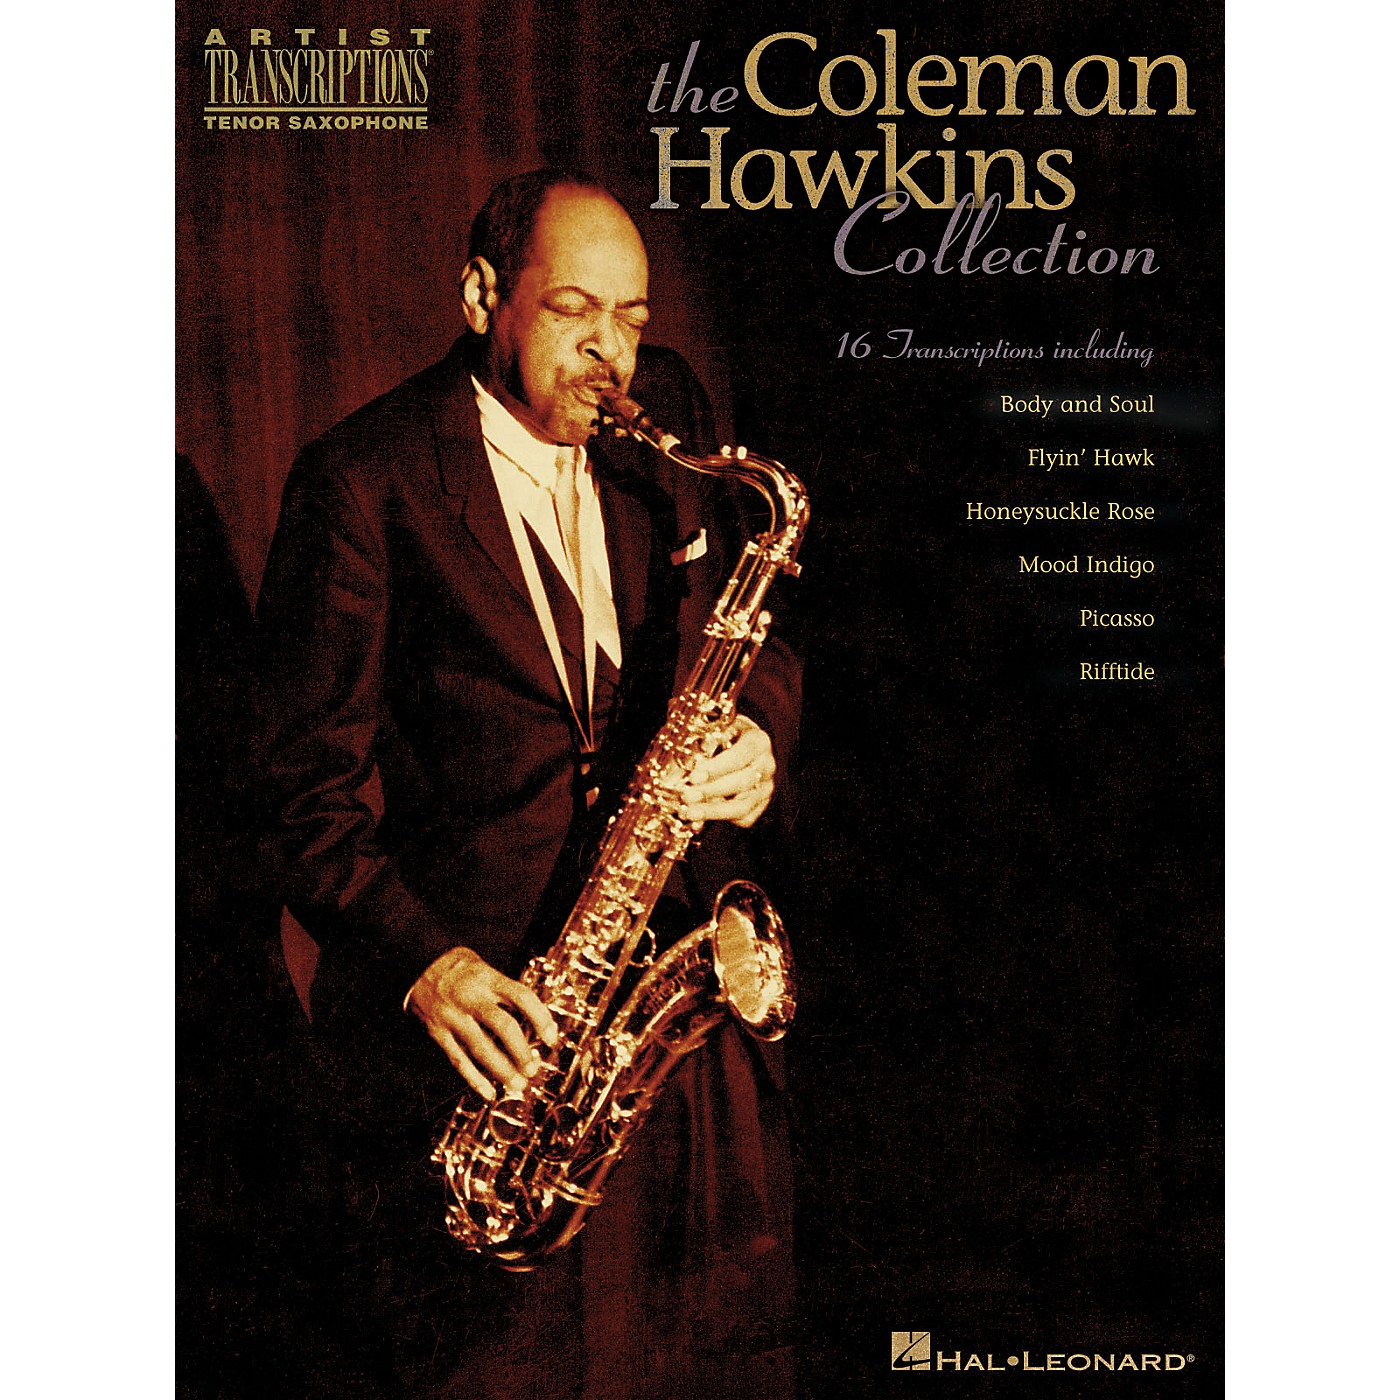 Hal Leonard The Coleman Hawkins Collection Artist Transcriptions Series Performed by Coleman Hawkins thumbnail